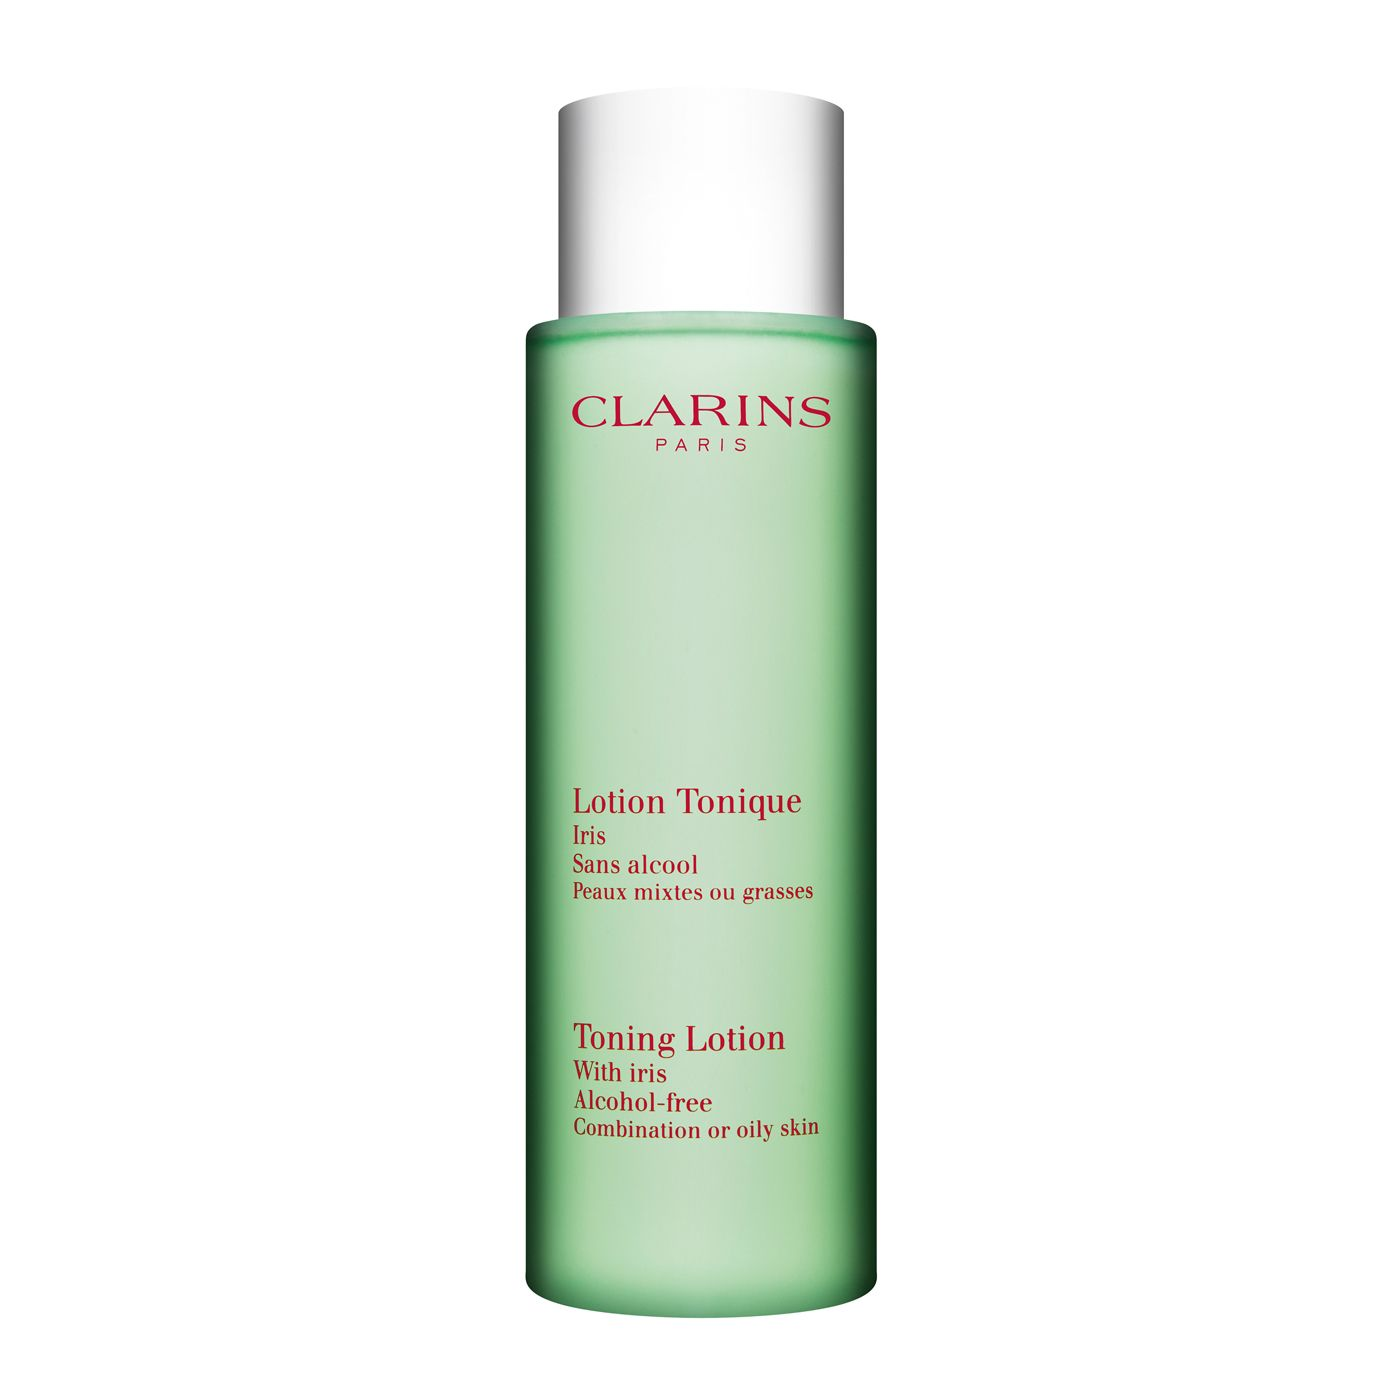 Clarins Toning Lotion -Combination/Oily skin